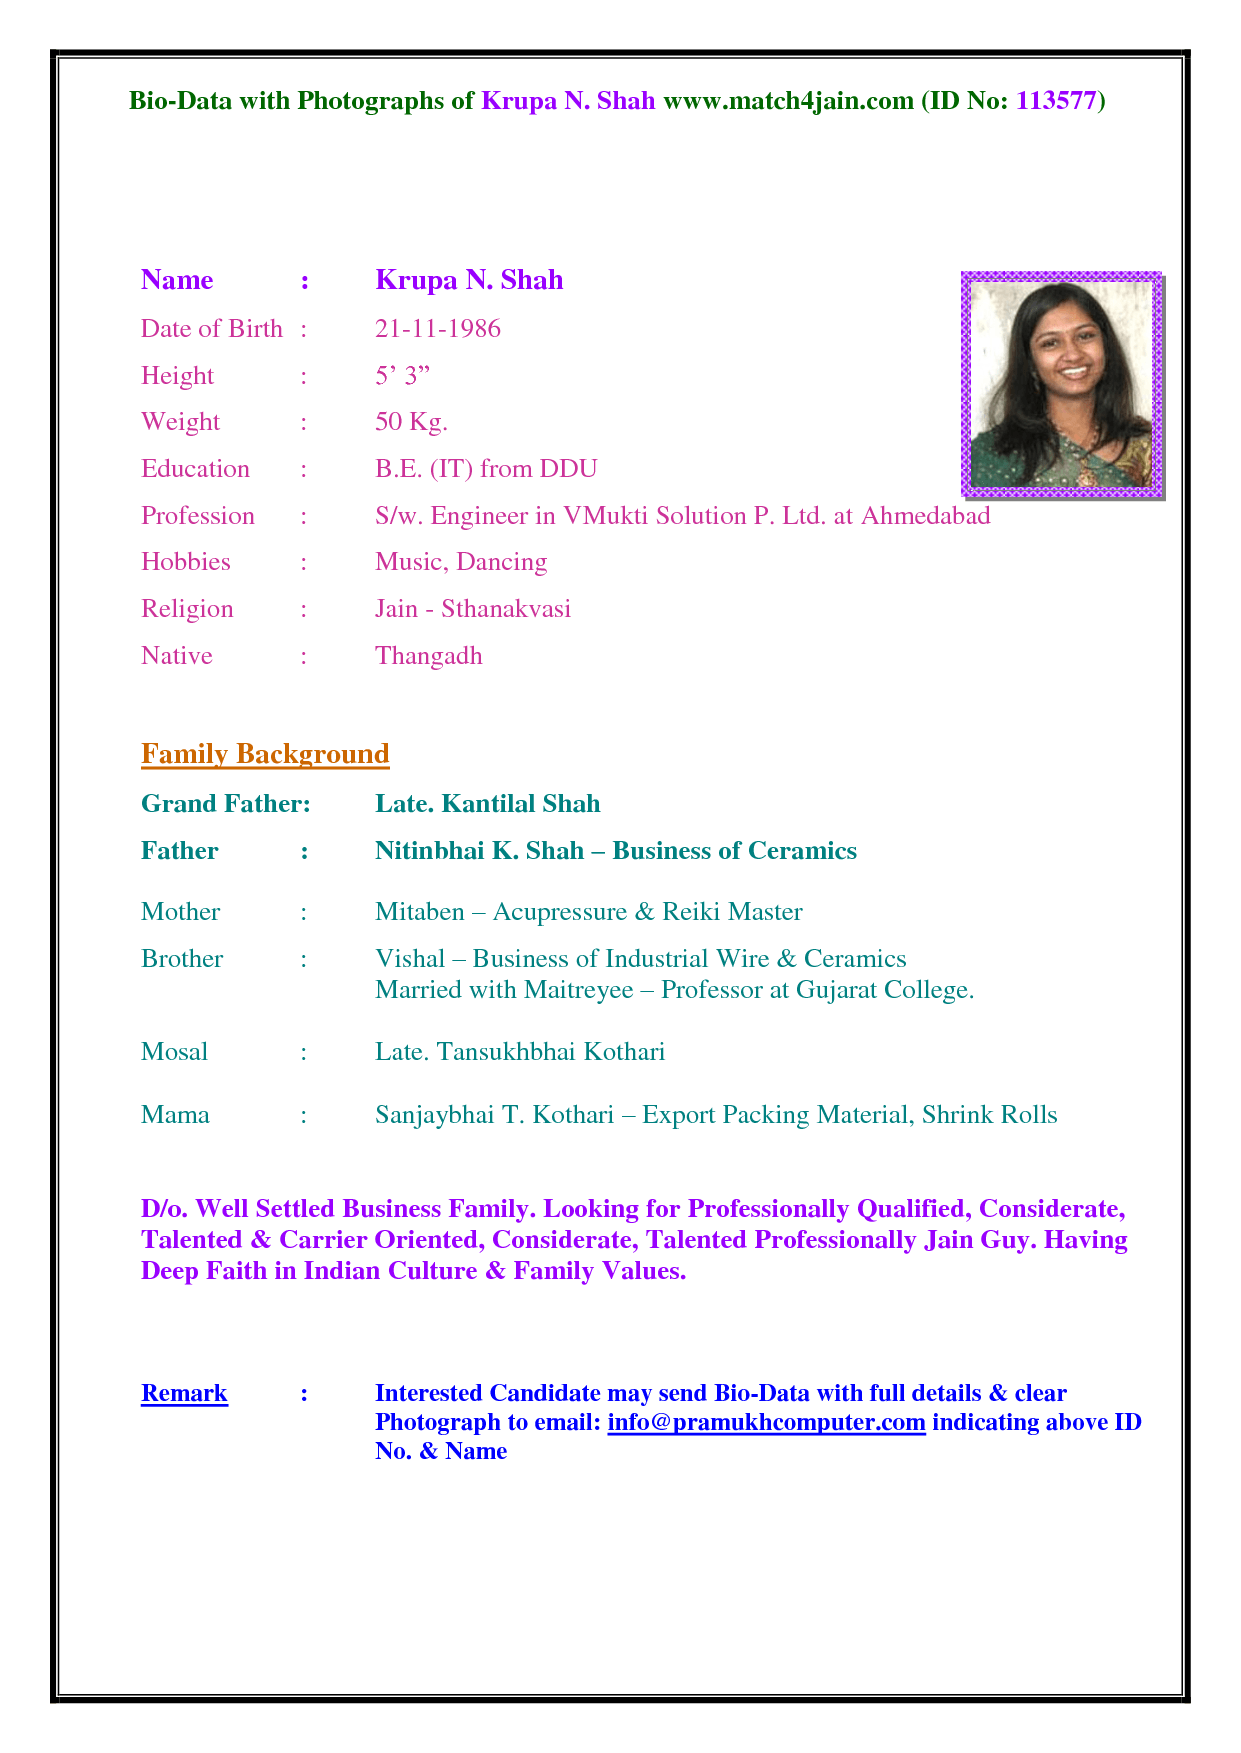 Sample Marriage Biodata Format In Word Easybiodata 1 Trusted Site For  Biodata Creation Marriage Biodata Doc Word Formate Resume Biodata Format  For Marriage ...  Resume Formats In Word